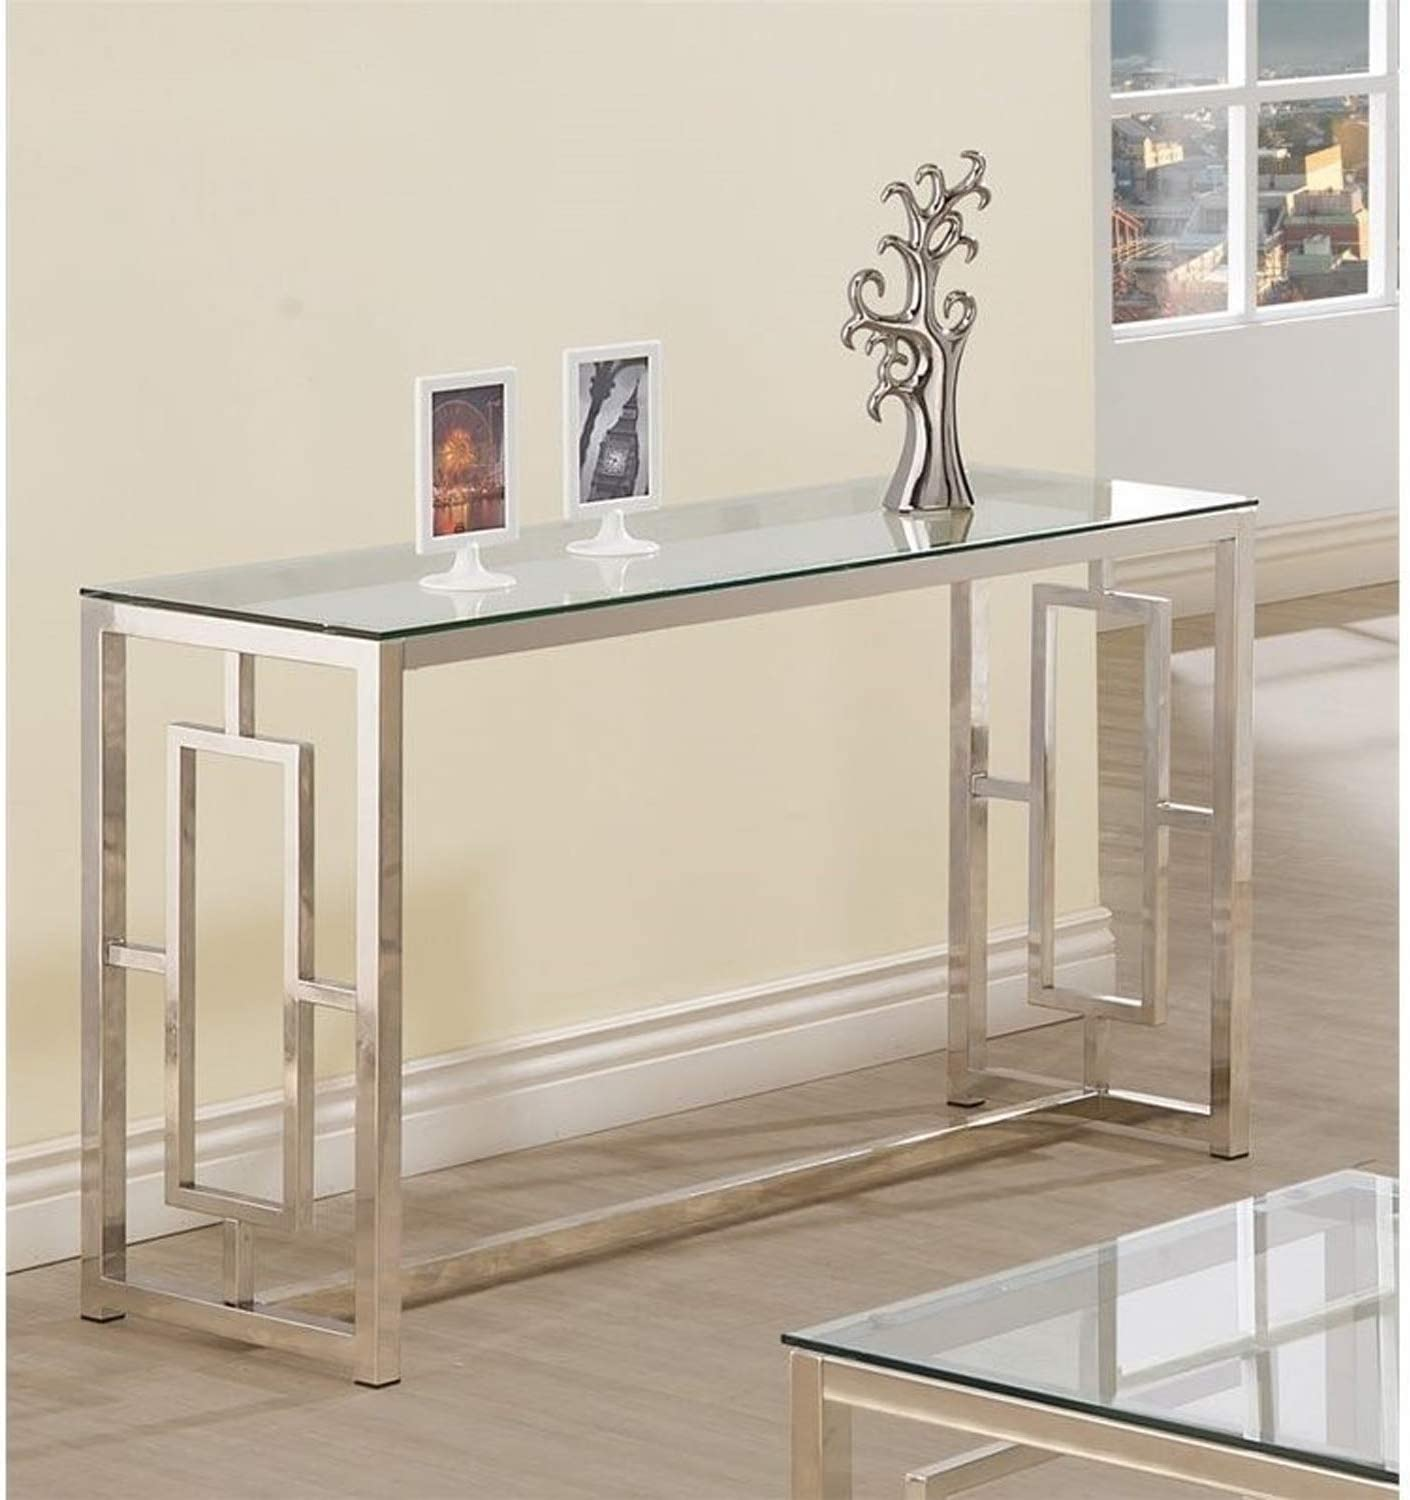 Amazon Com Console Table For Entryway Glass Top Modern Hall Room